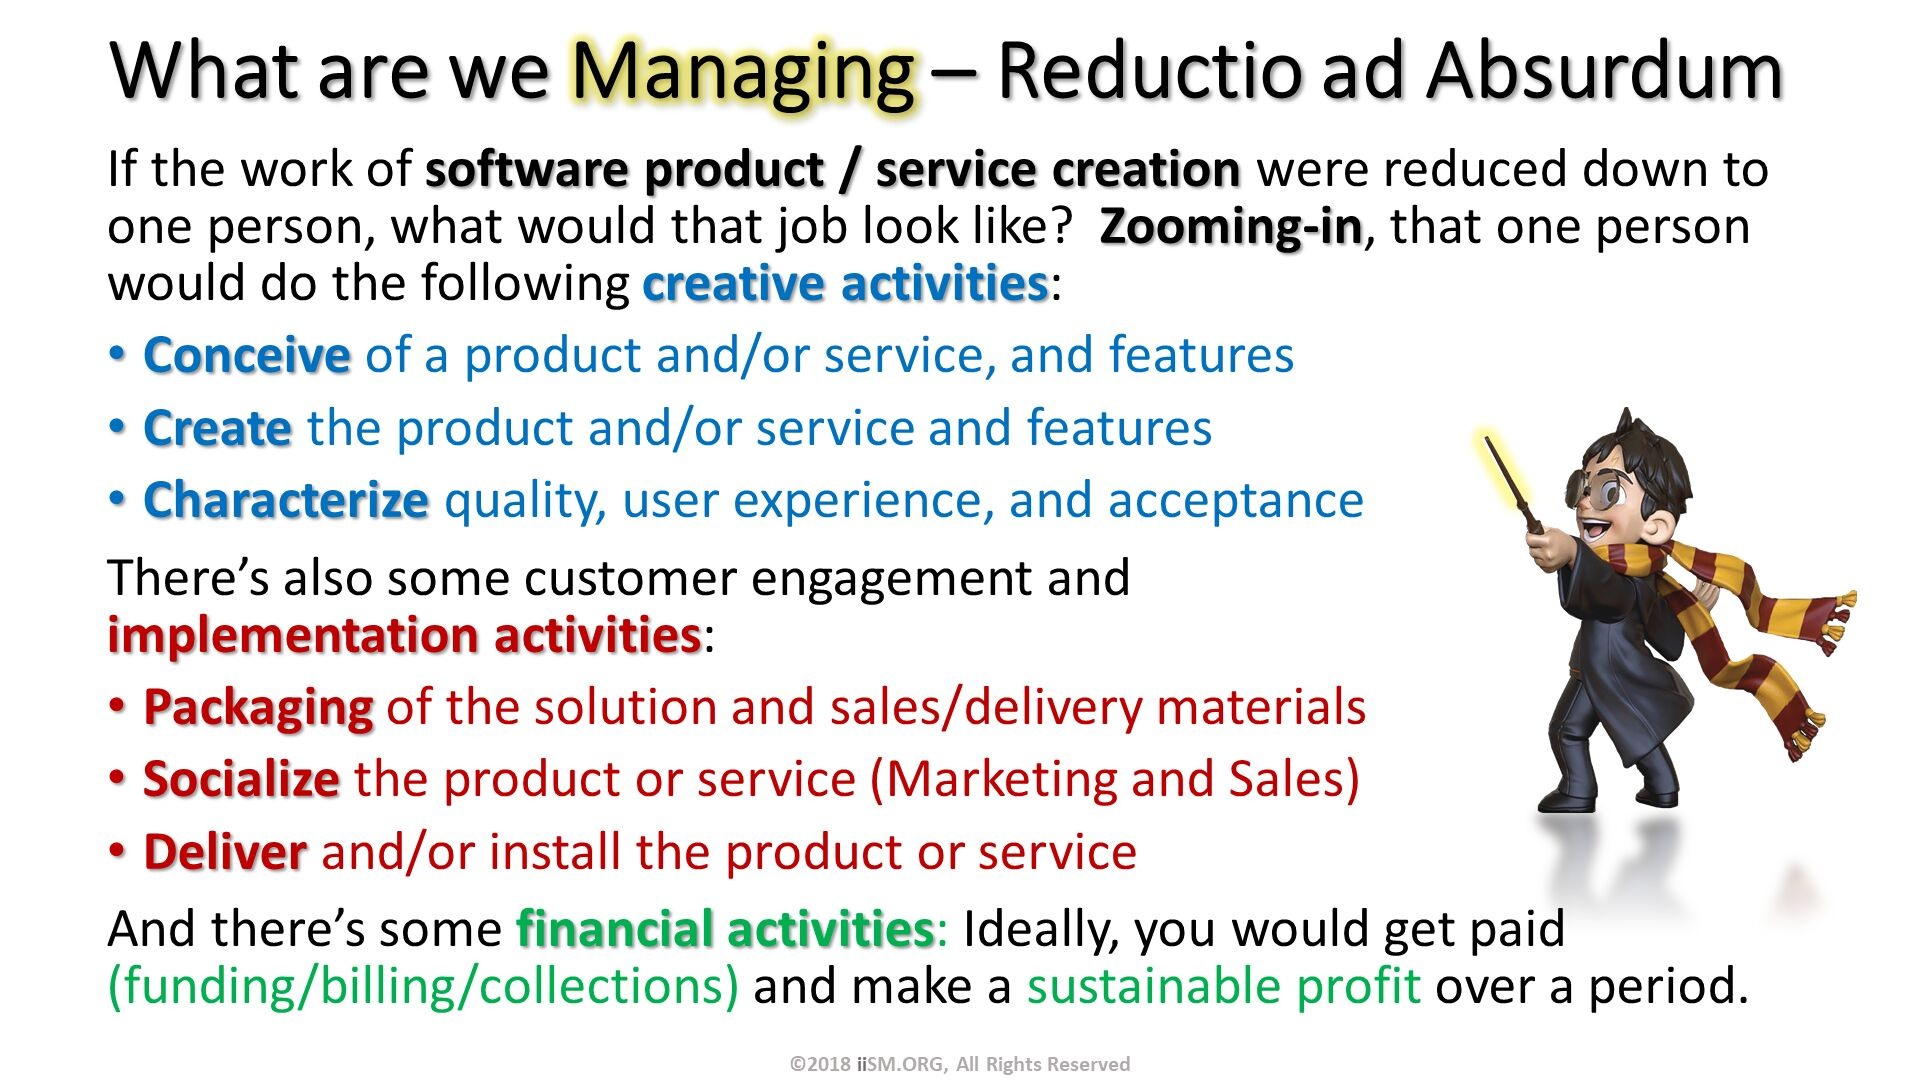 What are we Managing – Reductio ad Absurdum. If the work of software product / service creation were reduced down to one person, what would that job look like?  Zooming-in, that one person would do the following creative activities: Conceive of a product and/or service, and features Create the product and/or service and features Characterize quality, user experience, and acceptance There's also some customer engagement andimplementation activities: Packaging of the solution and sales/delivery materials Socialize the product or service (Marketing and Sales) Deliver and/or install the product or service And there's some financial activities: Ideally, you would get paid (funding/billing/collections) and make a sustainable profit over a period. ©2018 iiSM.ORG, All Rights Reserved.